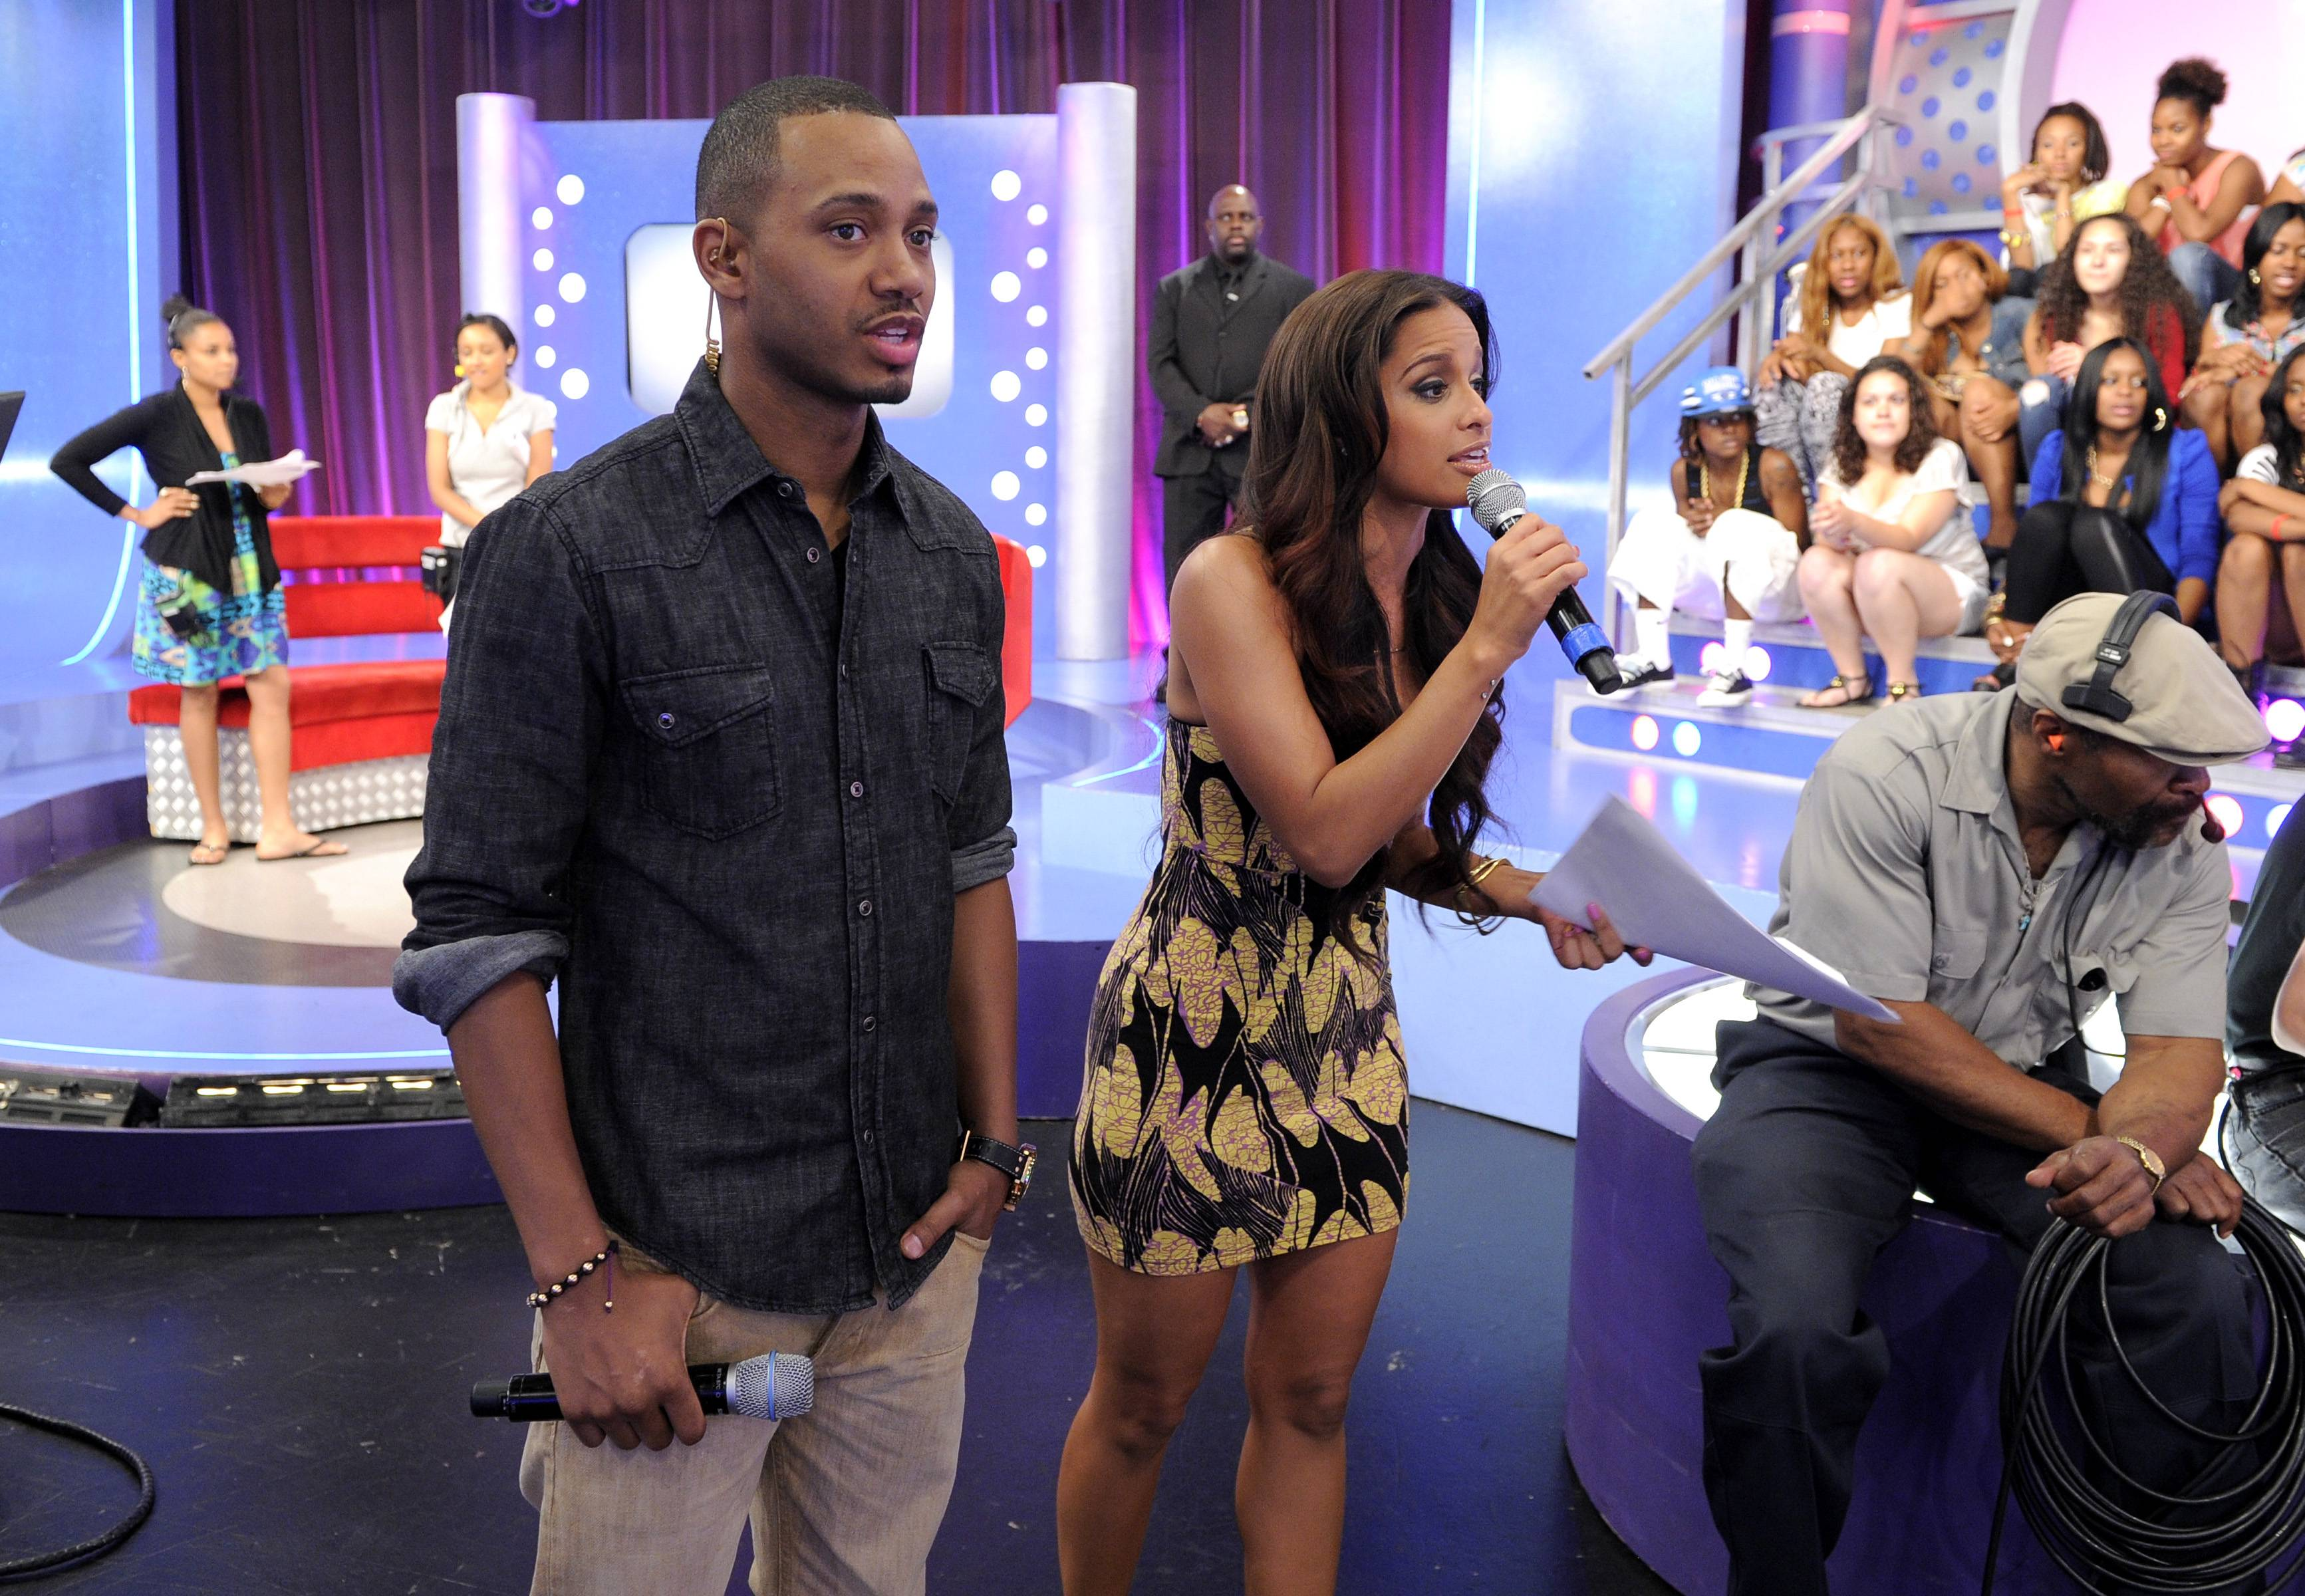 Crowd Interaction - Rocsi Diaz thanks the audience for being so lively at 106 & Park, May 29, 2012. (Photo: John Ricard / BET)